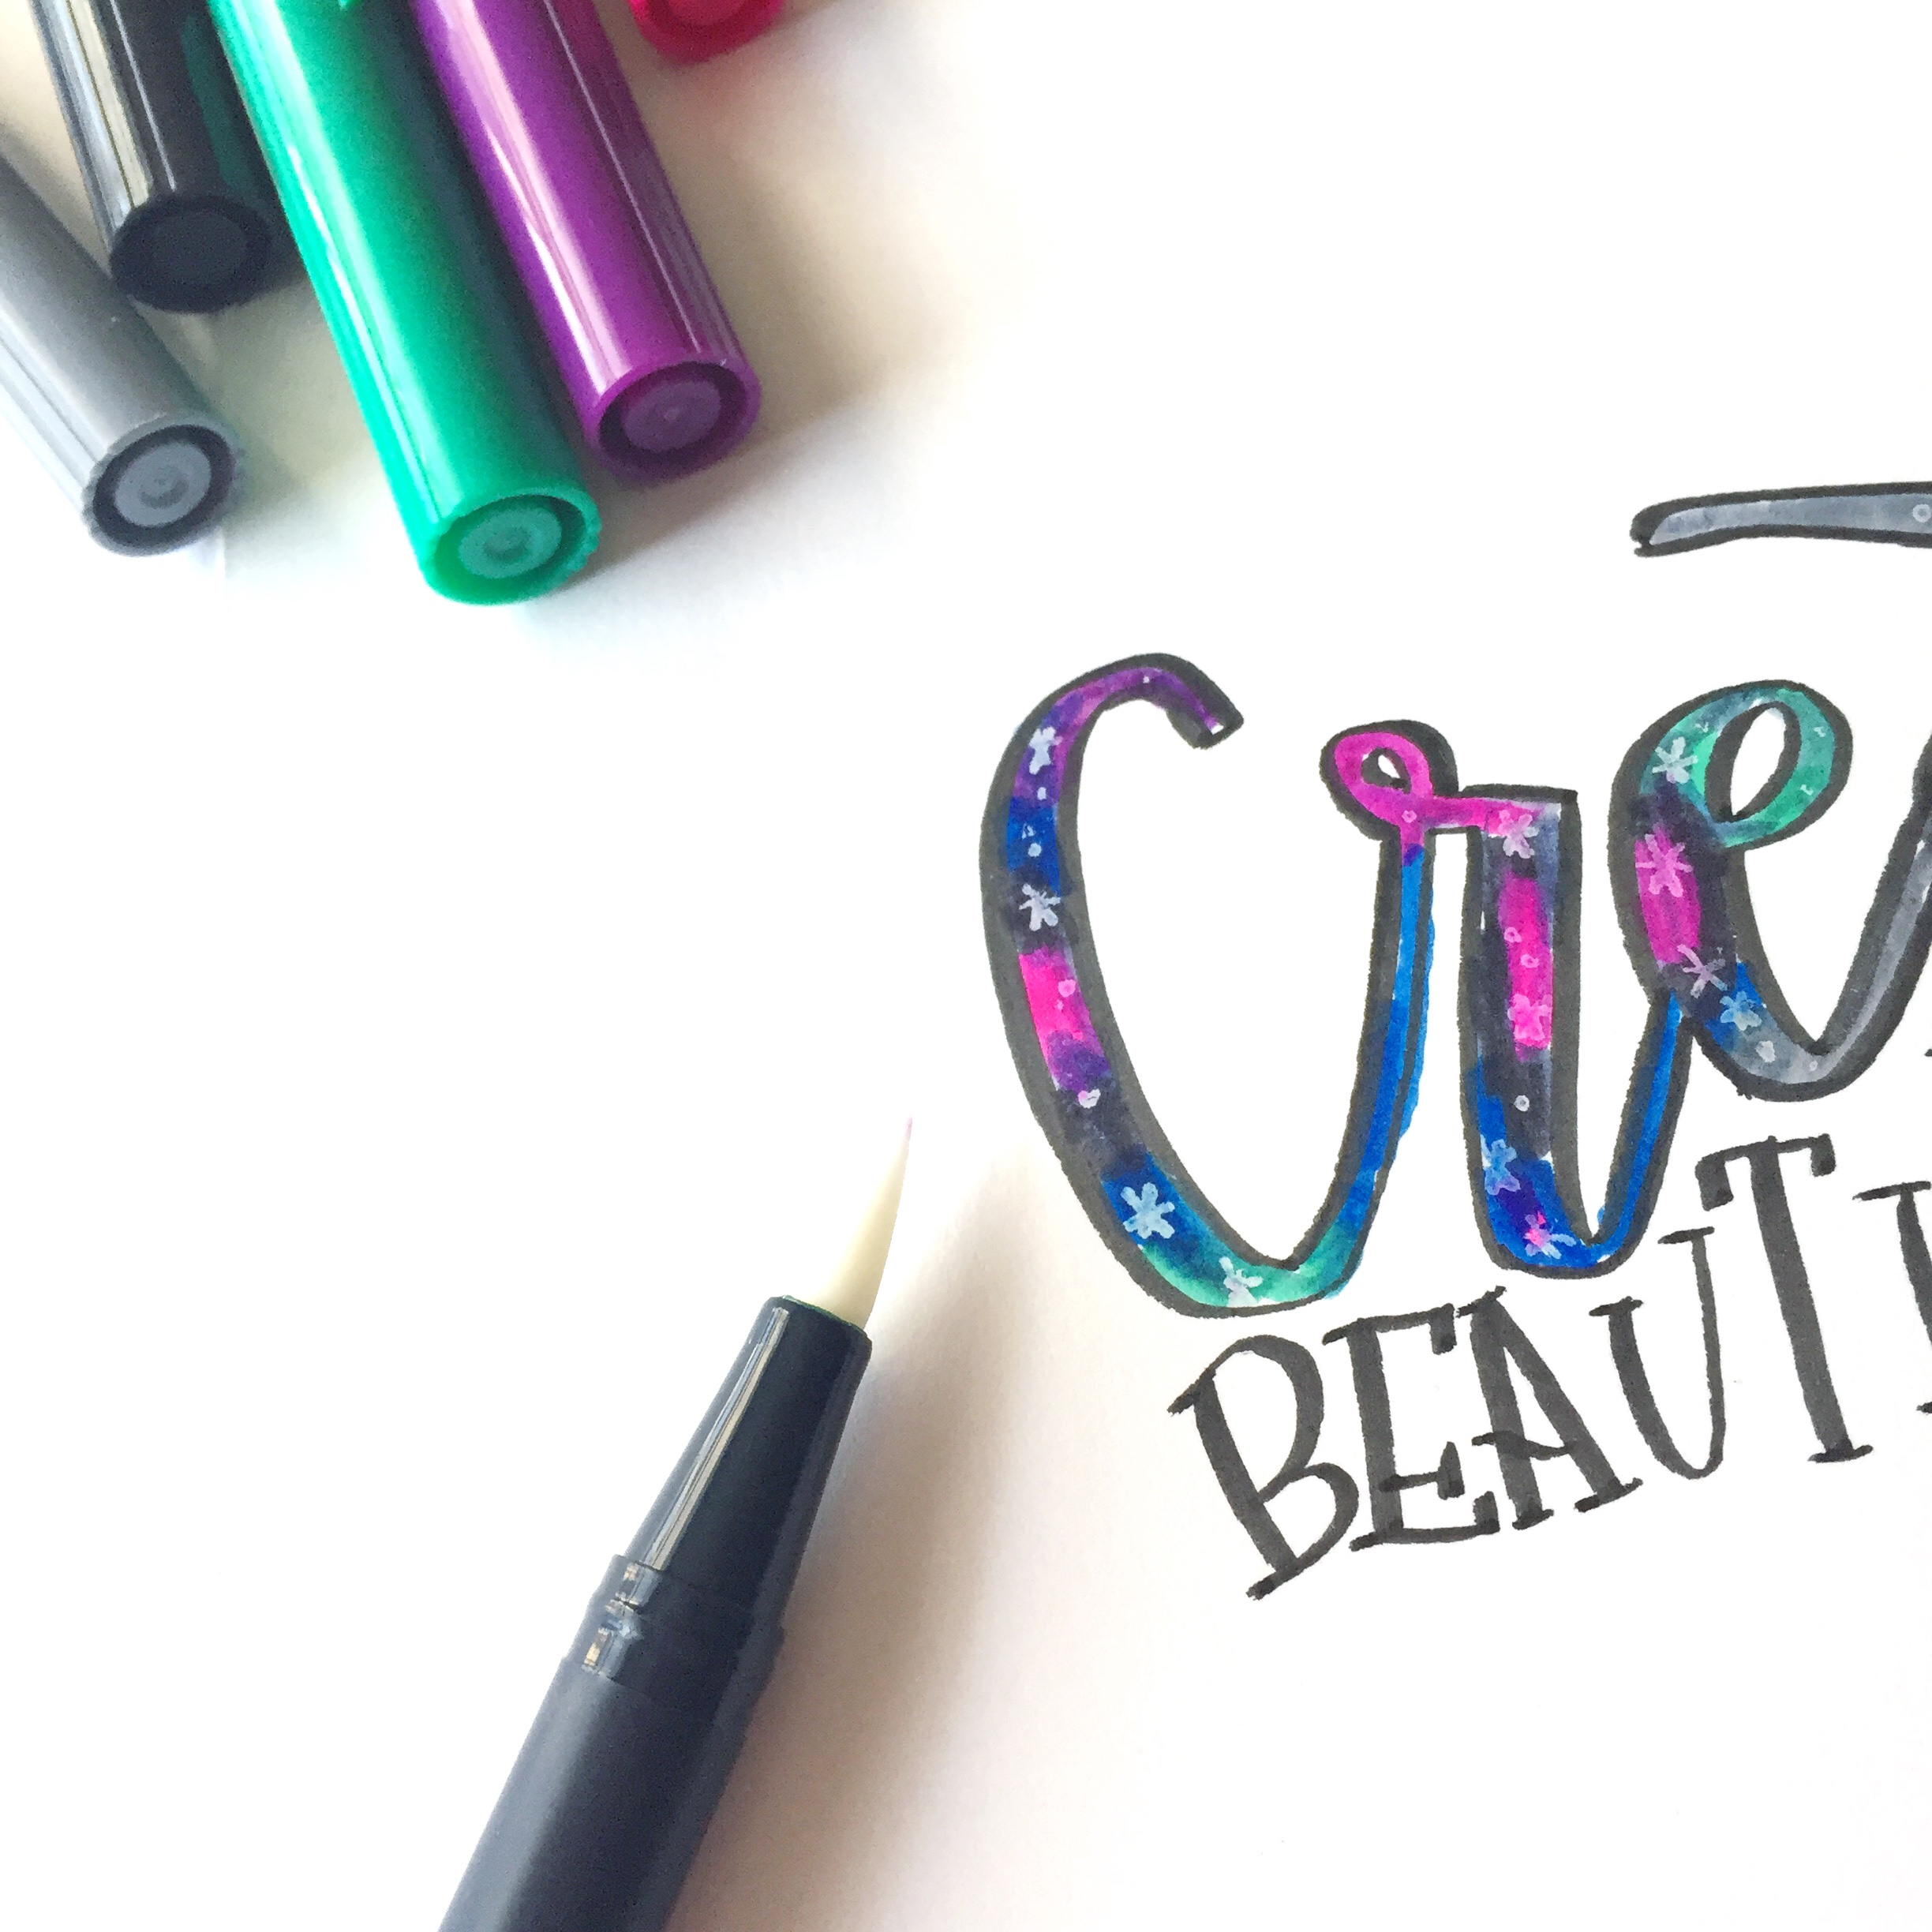 Lauren Fitzmaurice of @renmadcalligraphy gives you tips and tricks on how to create fun patterned lettering using the new Tombow Dual Brush Pen Galaxy and Pastel Palettes. For more tips and tricks, check out renmadecalligraphy.com.